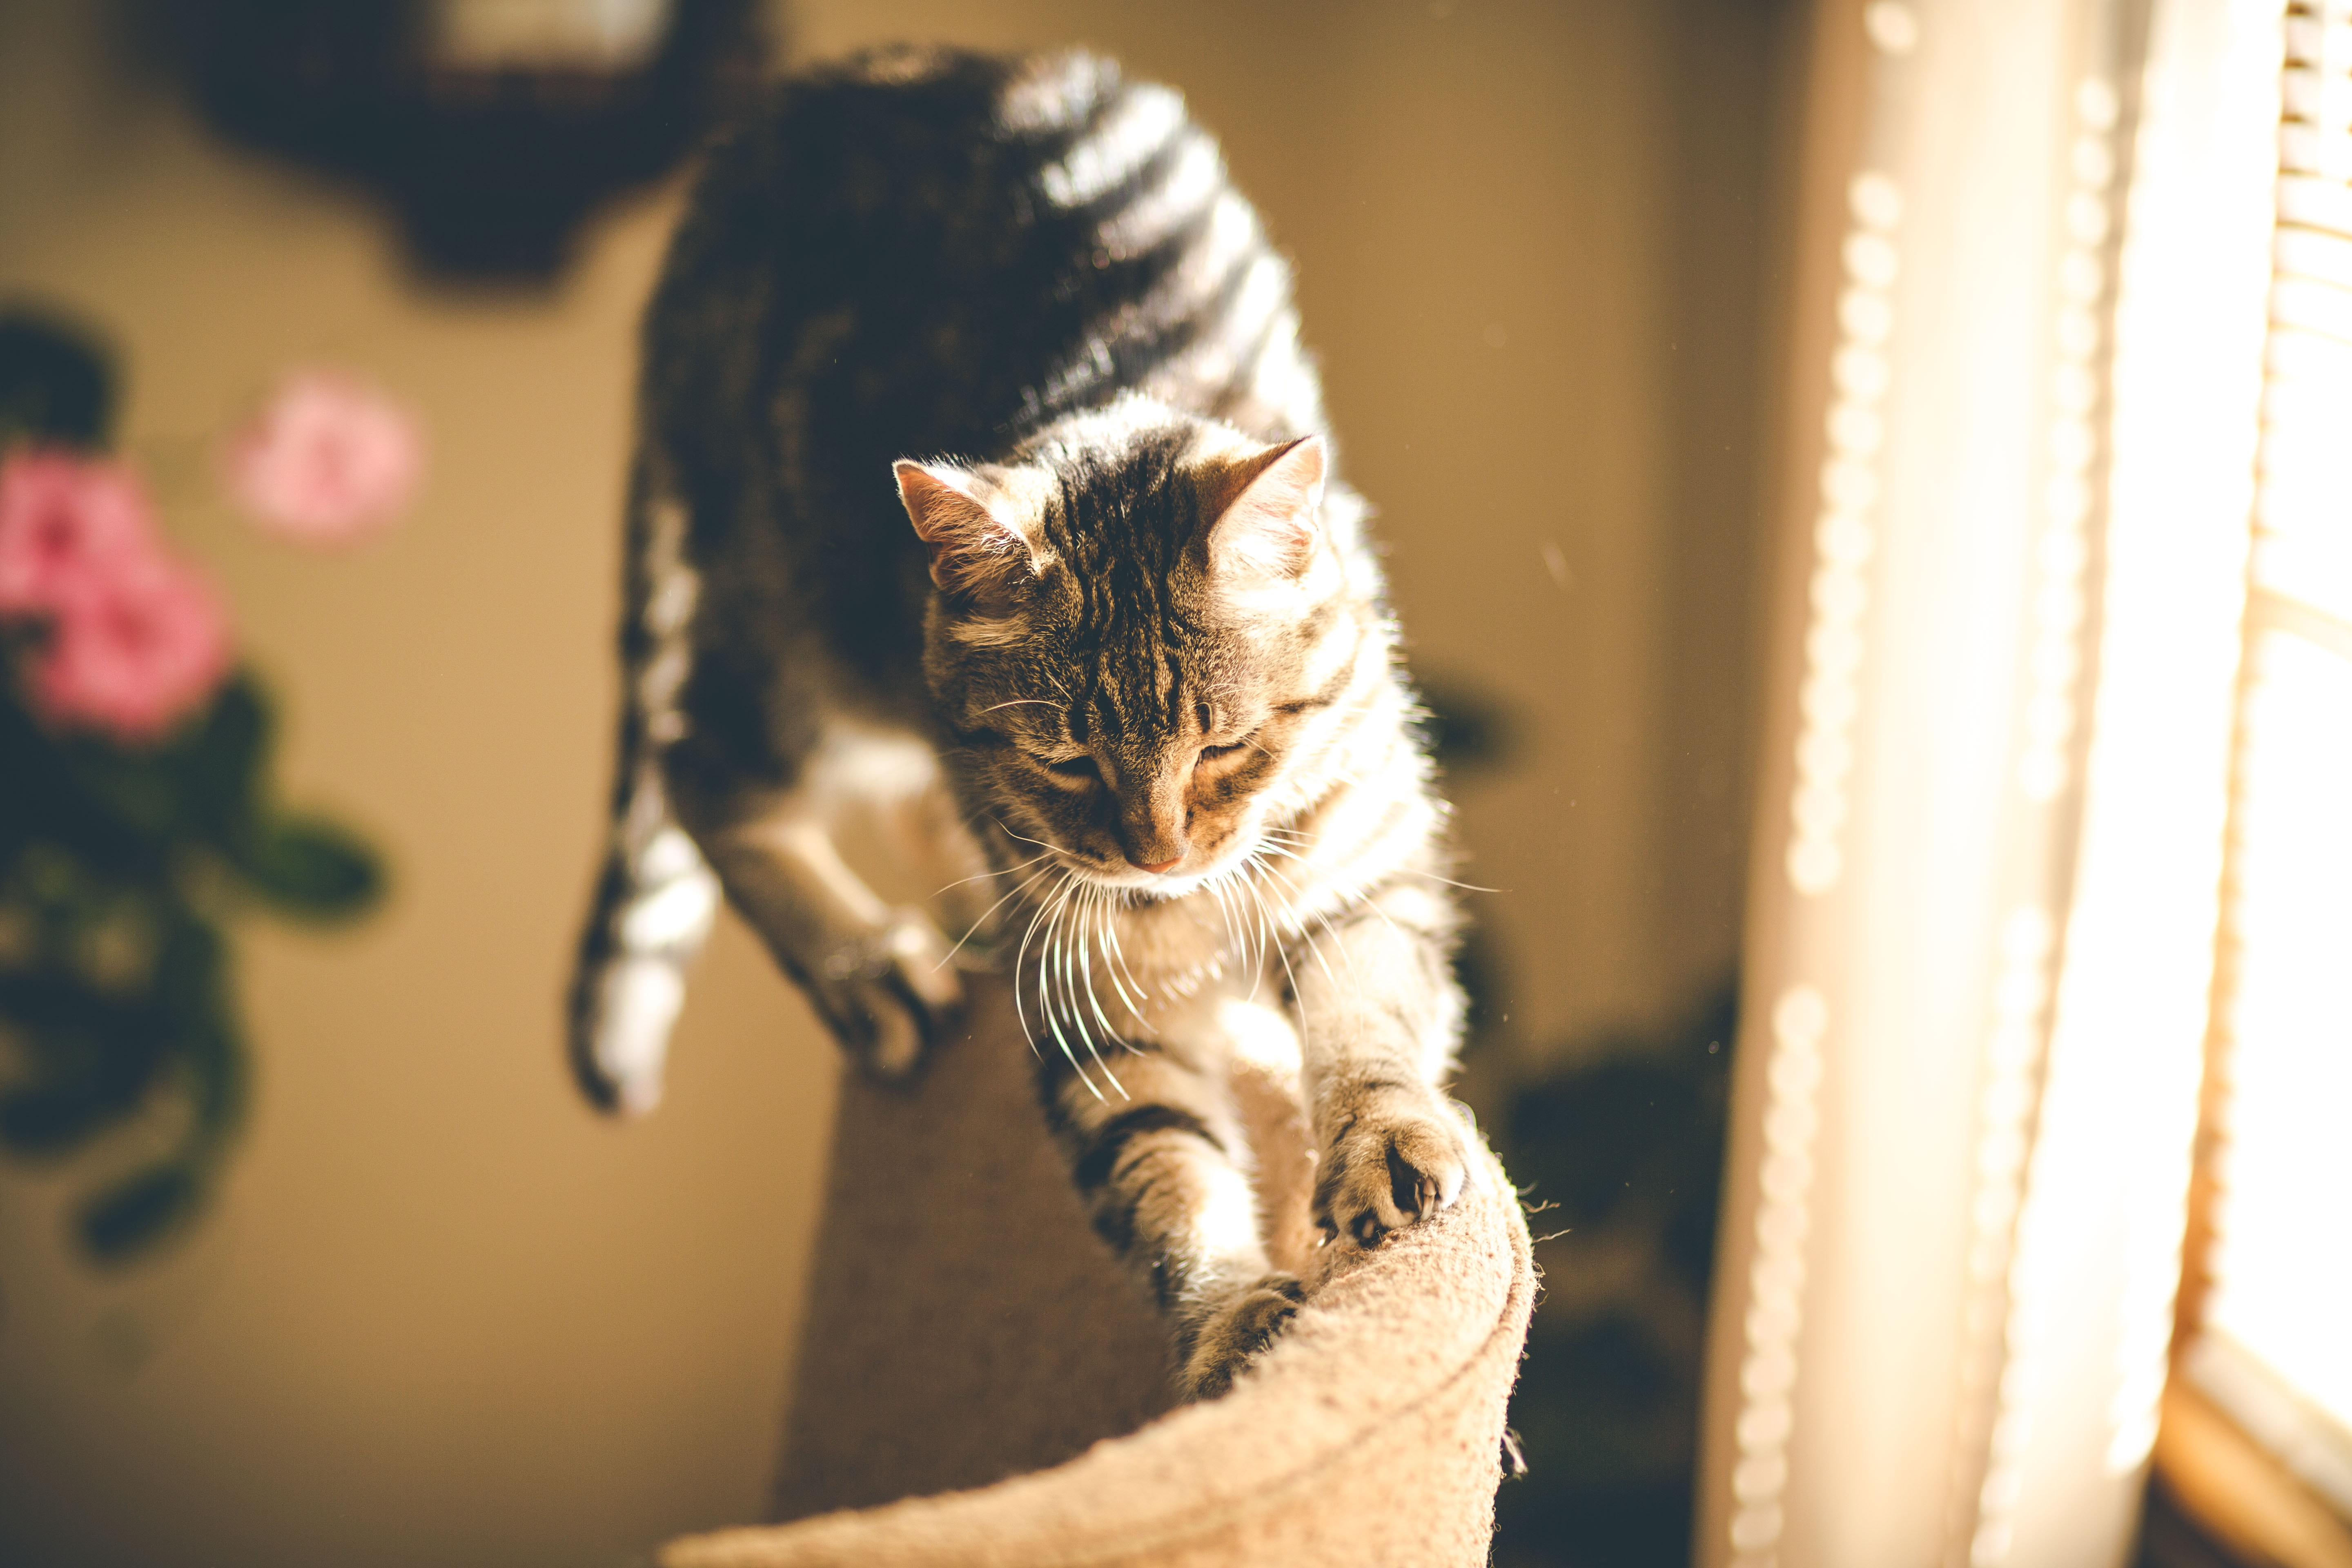 A cat clawing on the top of an upholstered chair.